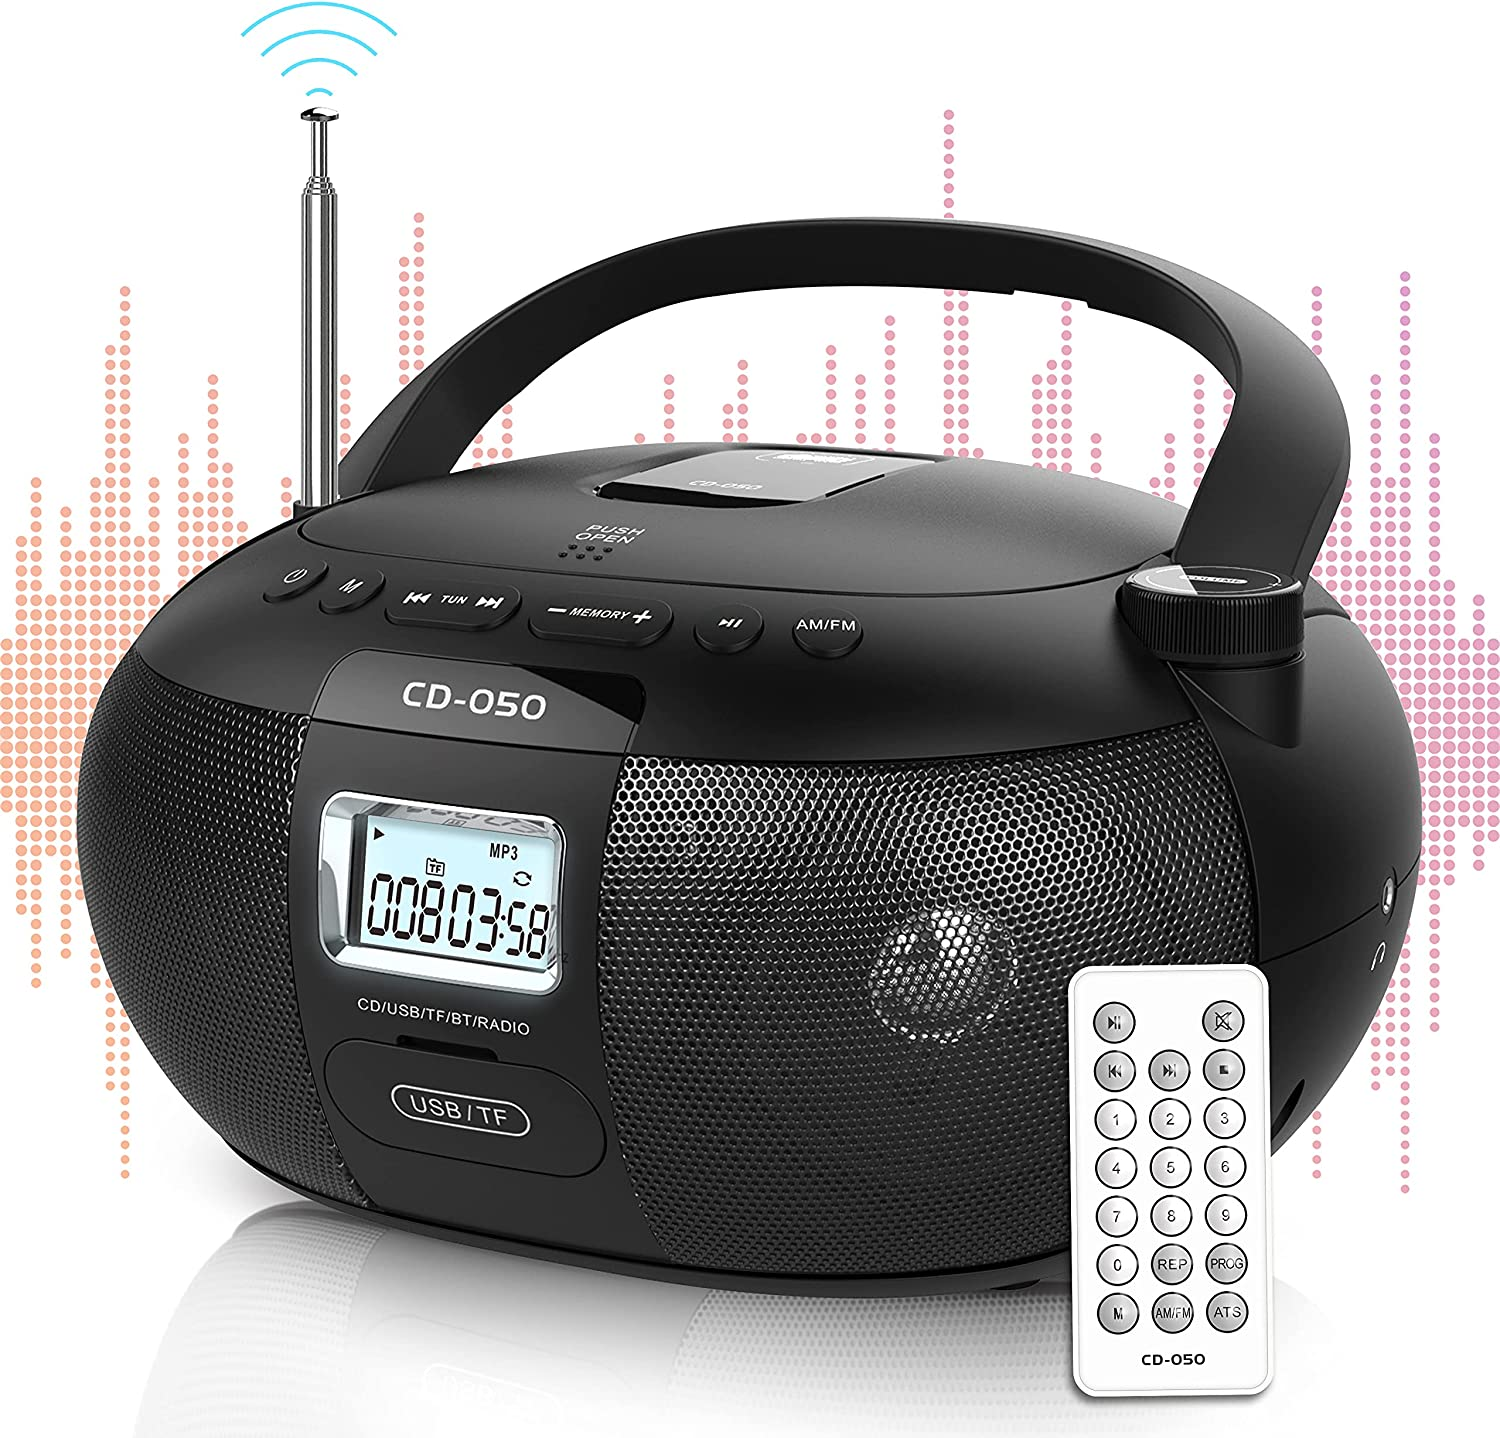 Greadio CD Player Portable Boombox with AM FM Stereo Radio, Bluetooth 5.0/TF Port/USB Drive, LCD Display, Headphone Jack, AC/Battery Powered, Remote Control, CD-R/CD-RW Compatible for Home,Senior,Kids